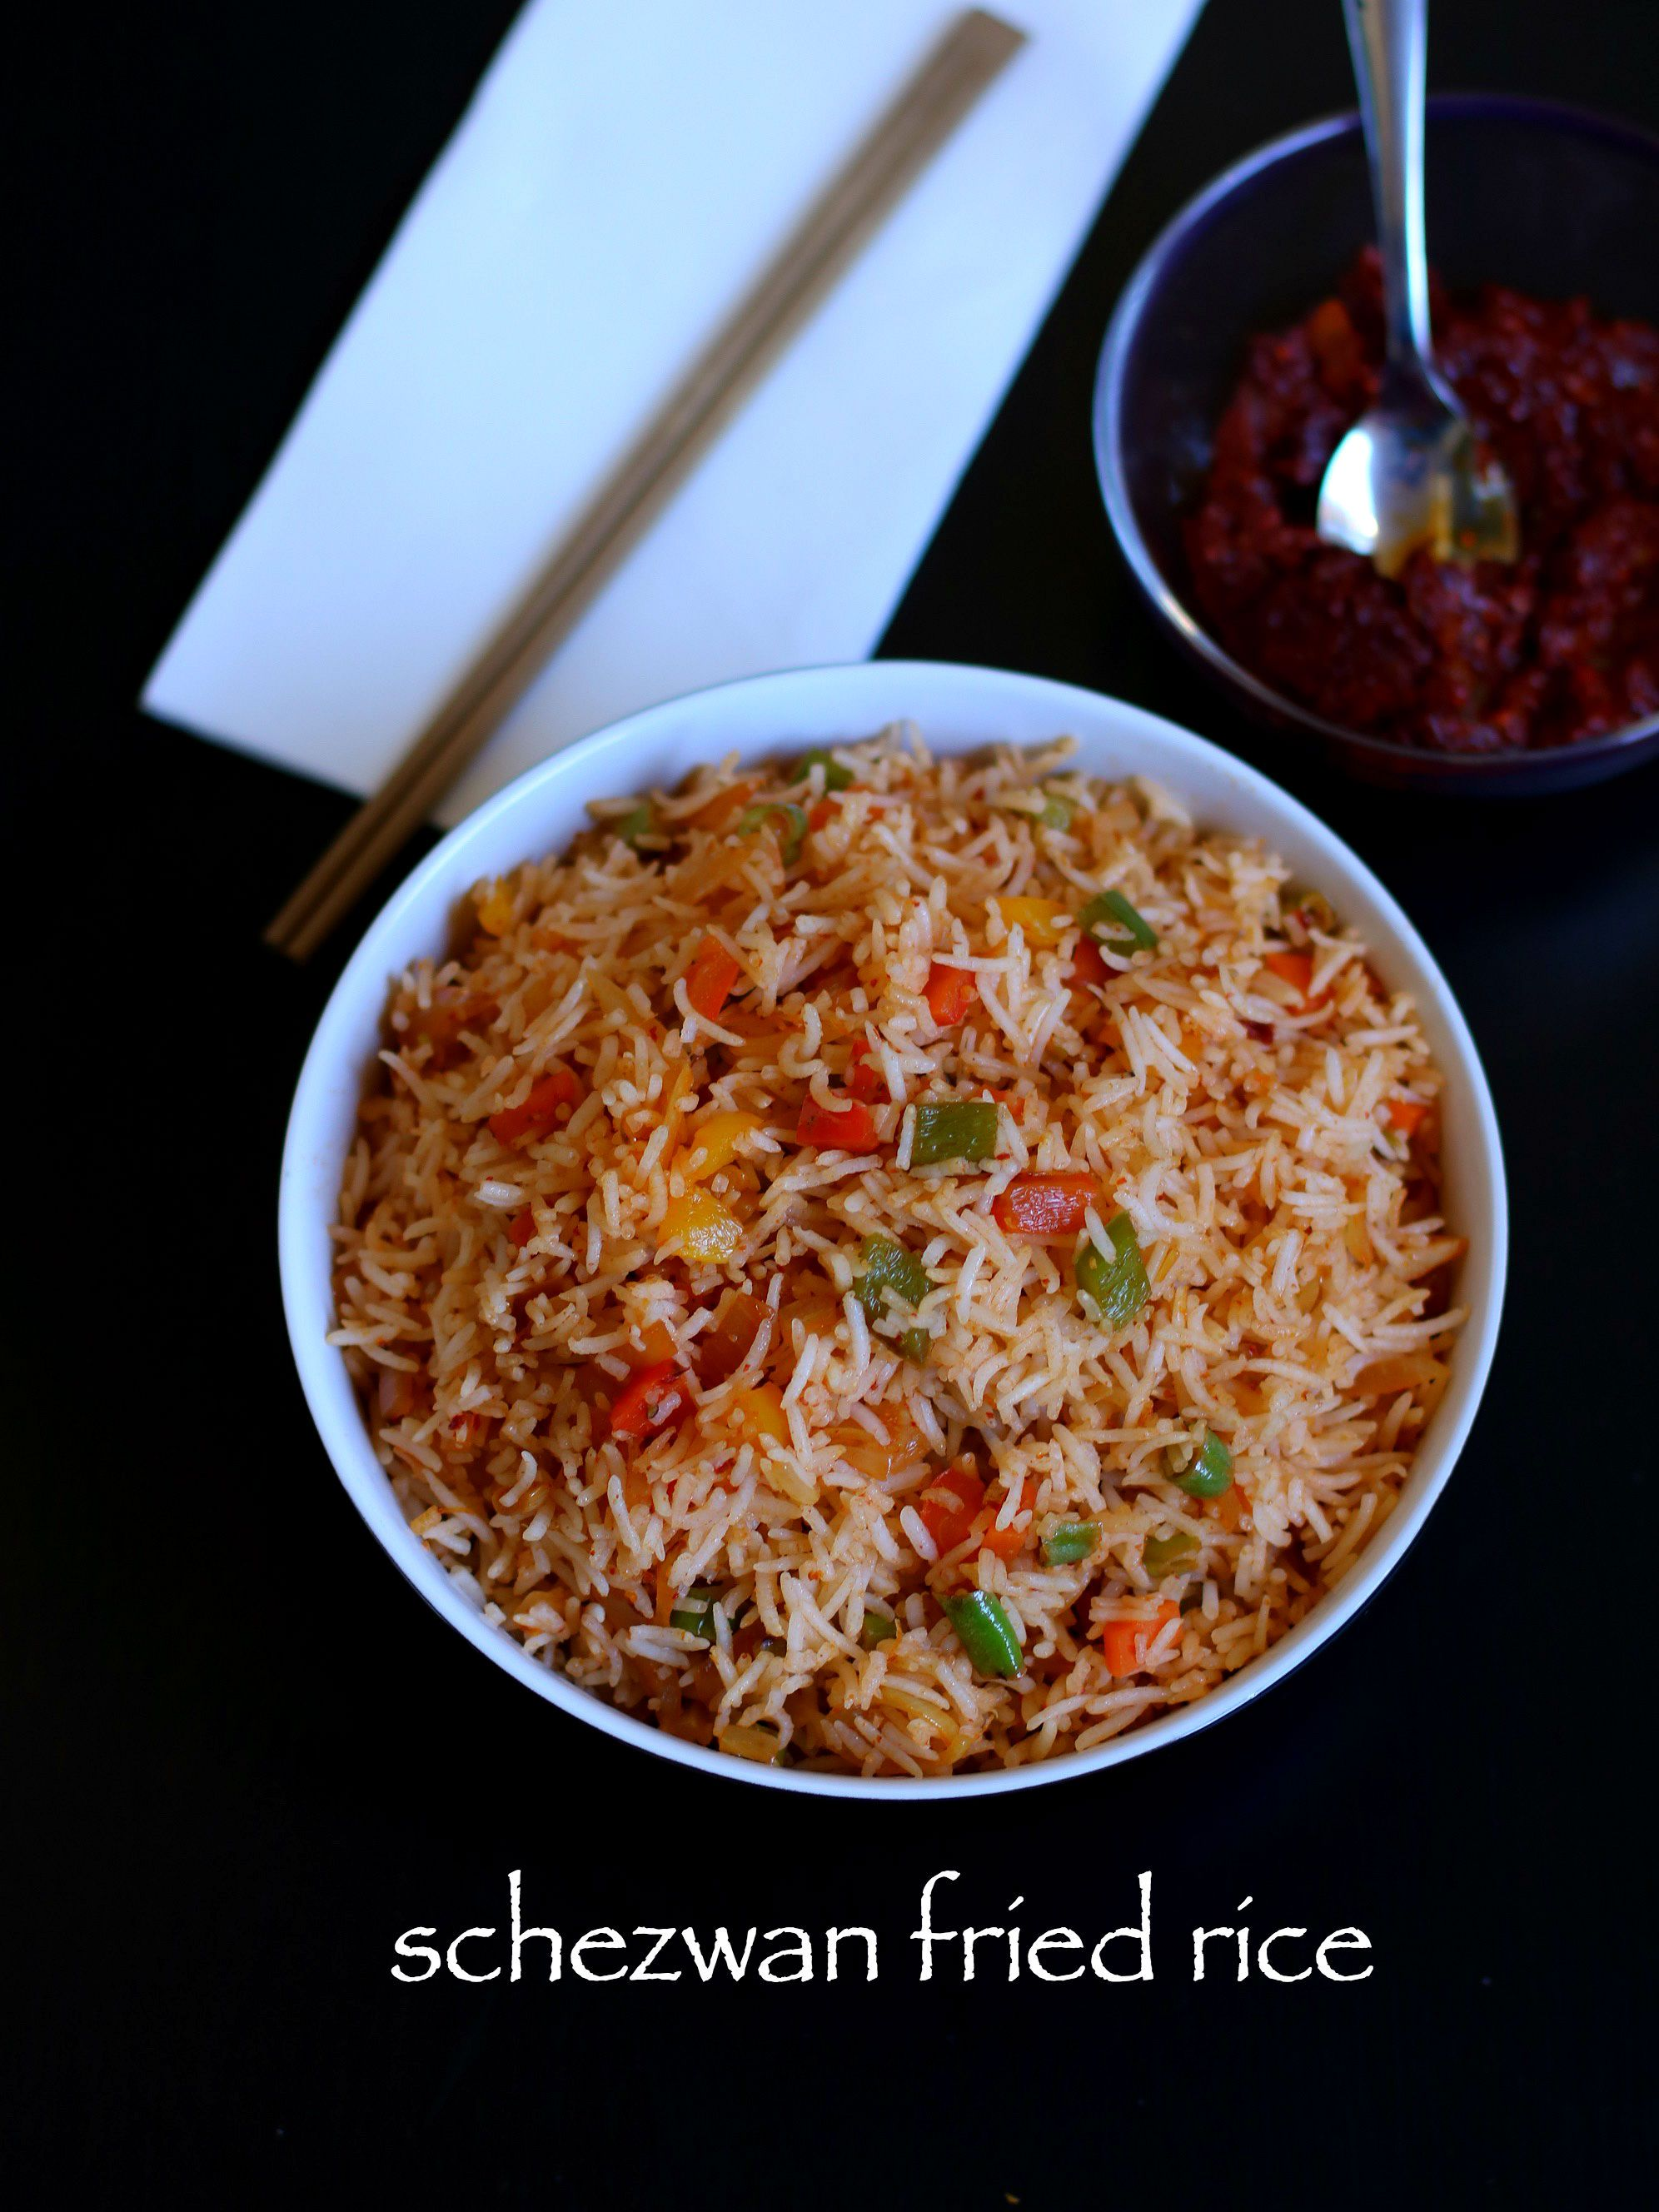 schezwan fried rice 3 | My choice | Pinterest | Fried rice ...